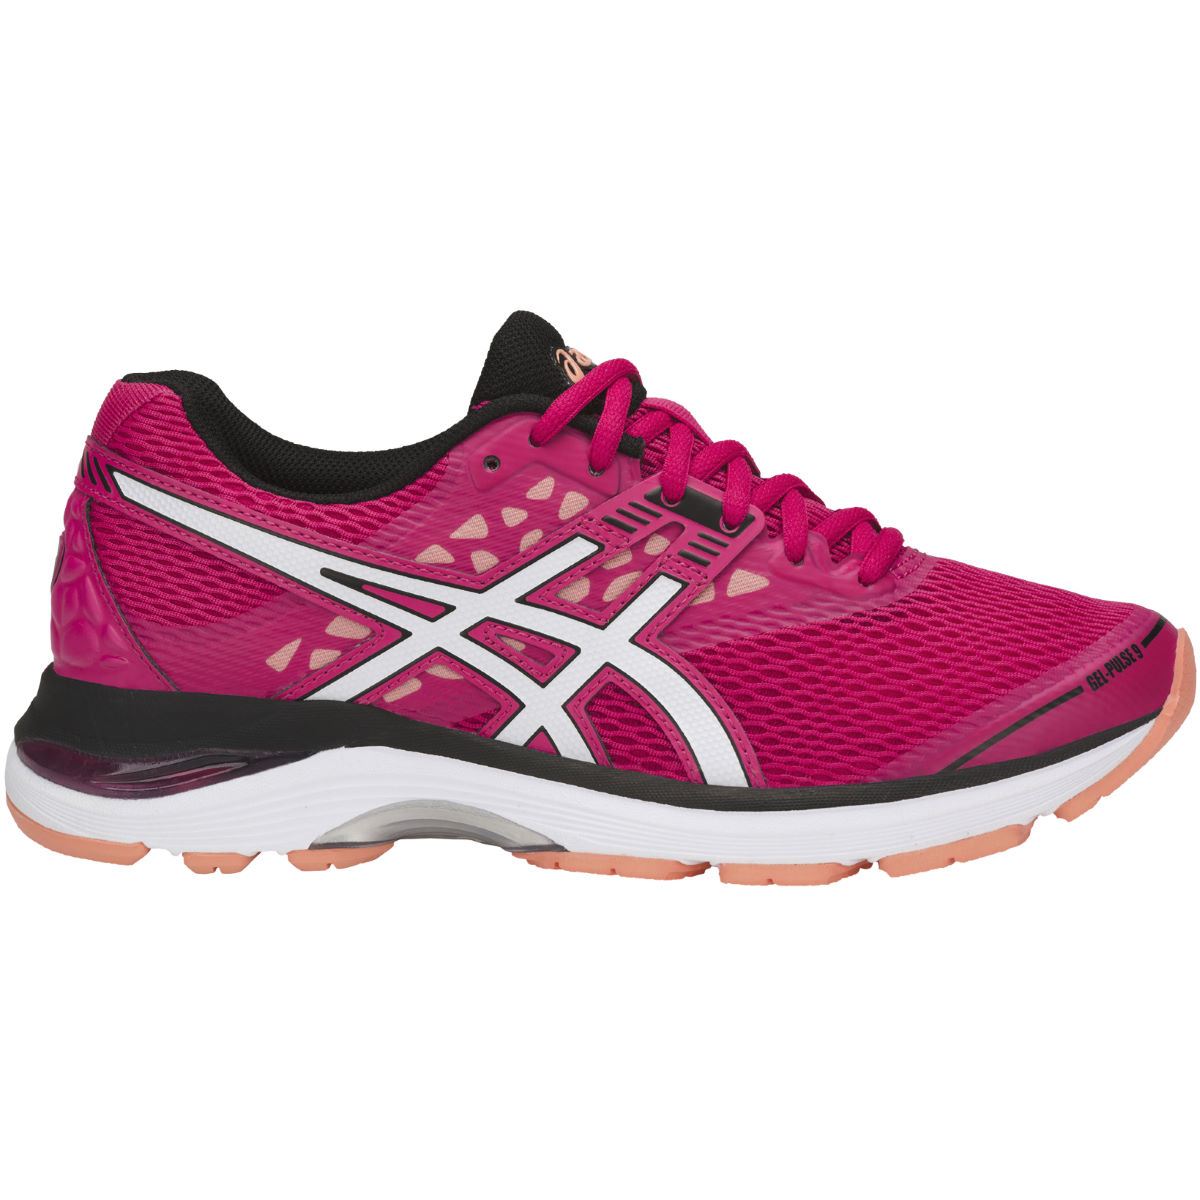 Chaussures Femme Asics Gel-Pulse 9 - UK 6 BRIGHT ROSE/WHITE/BL